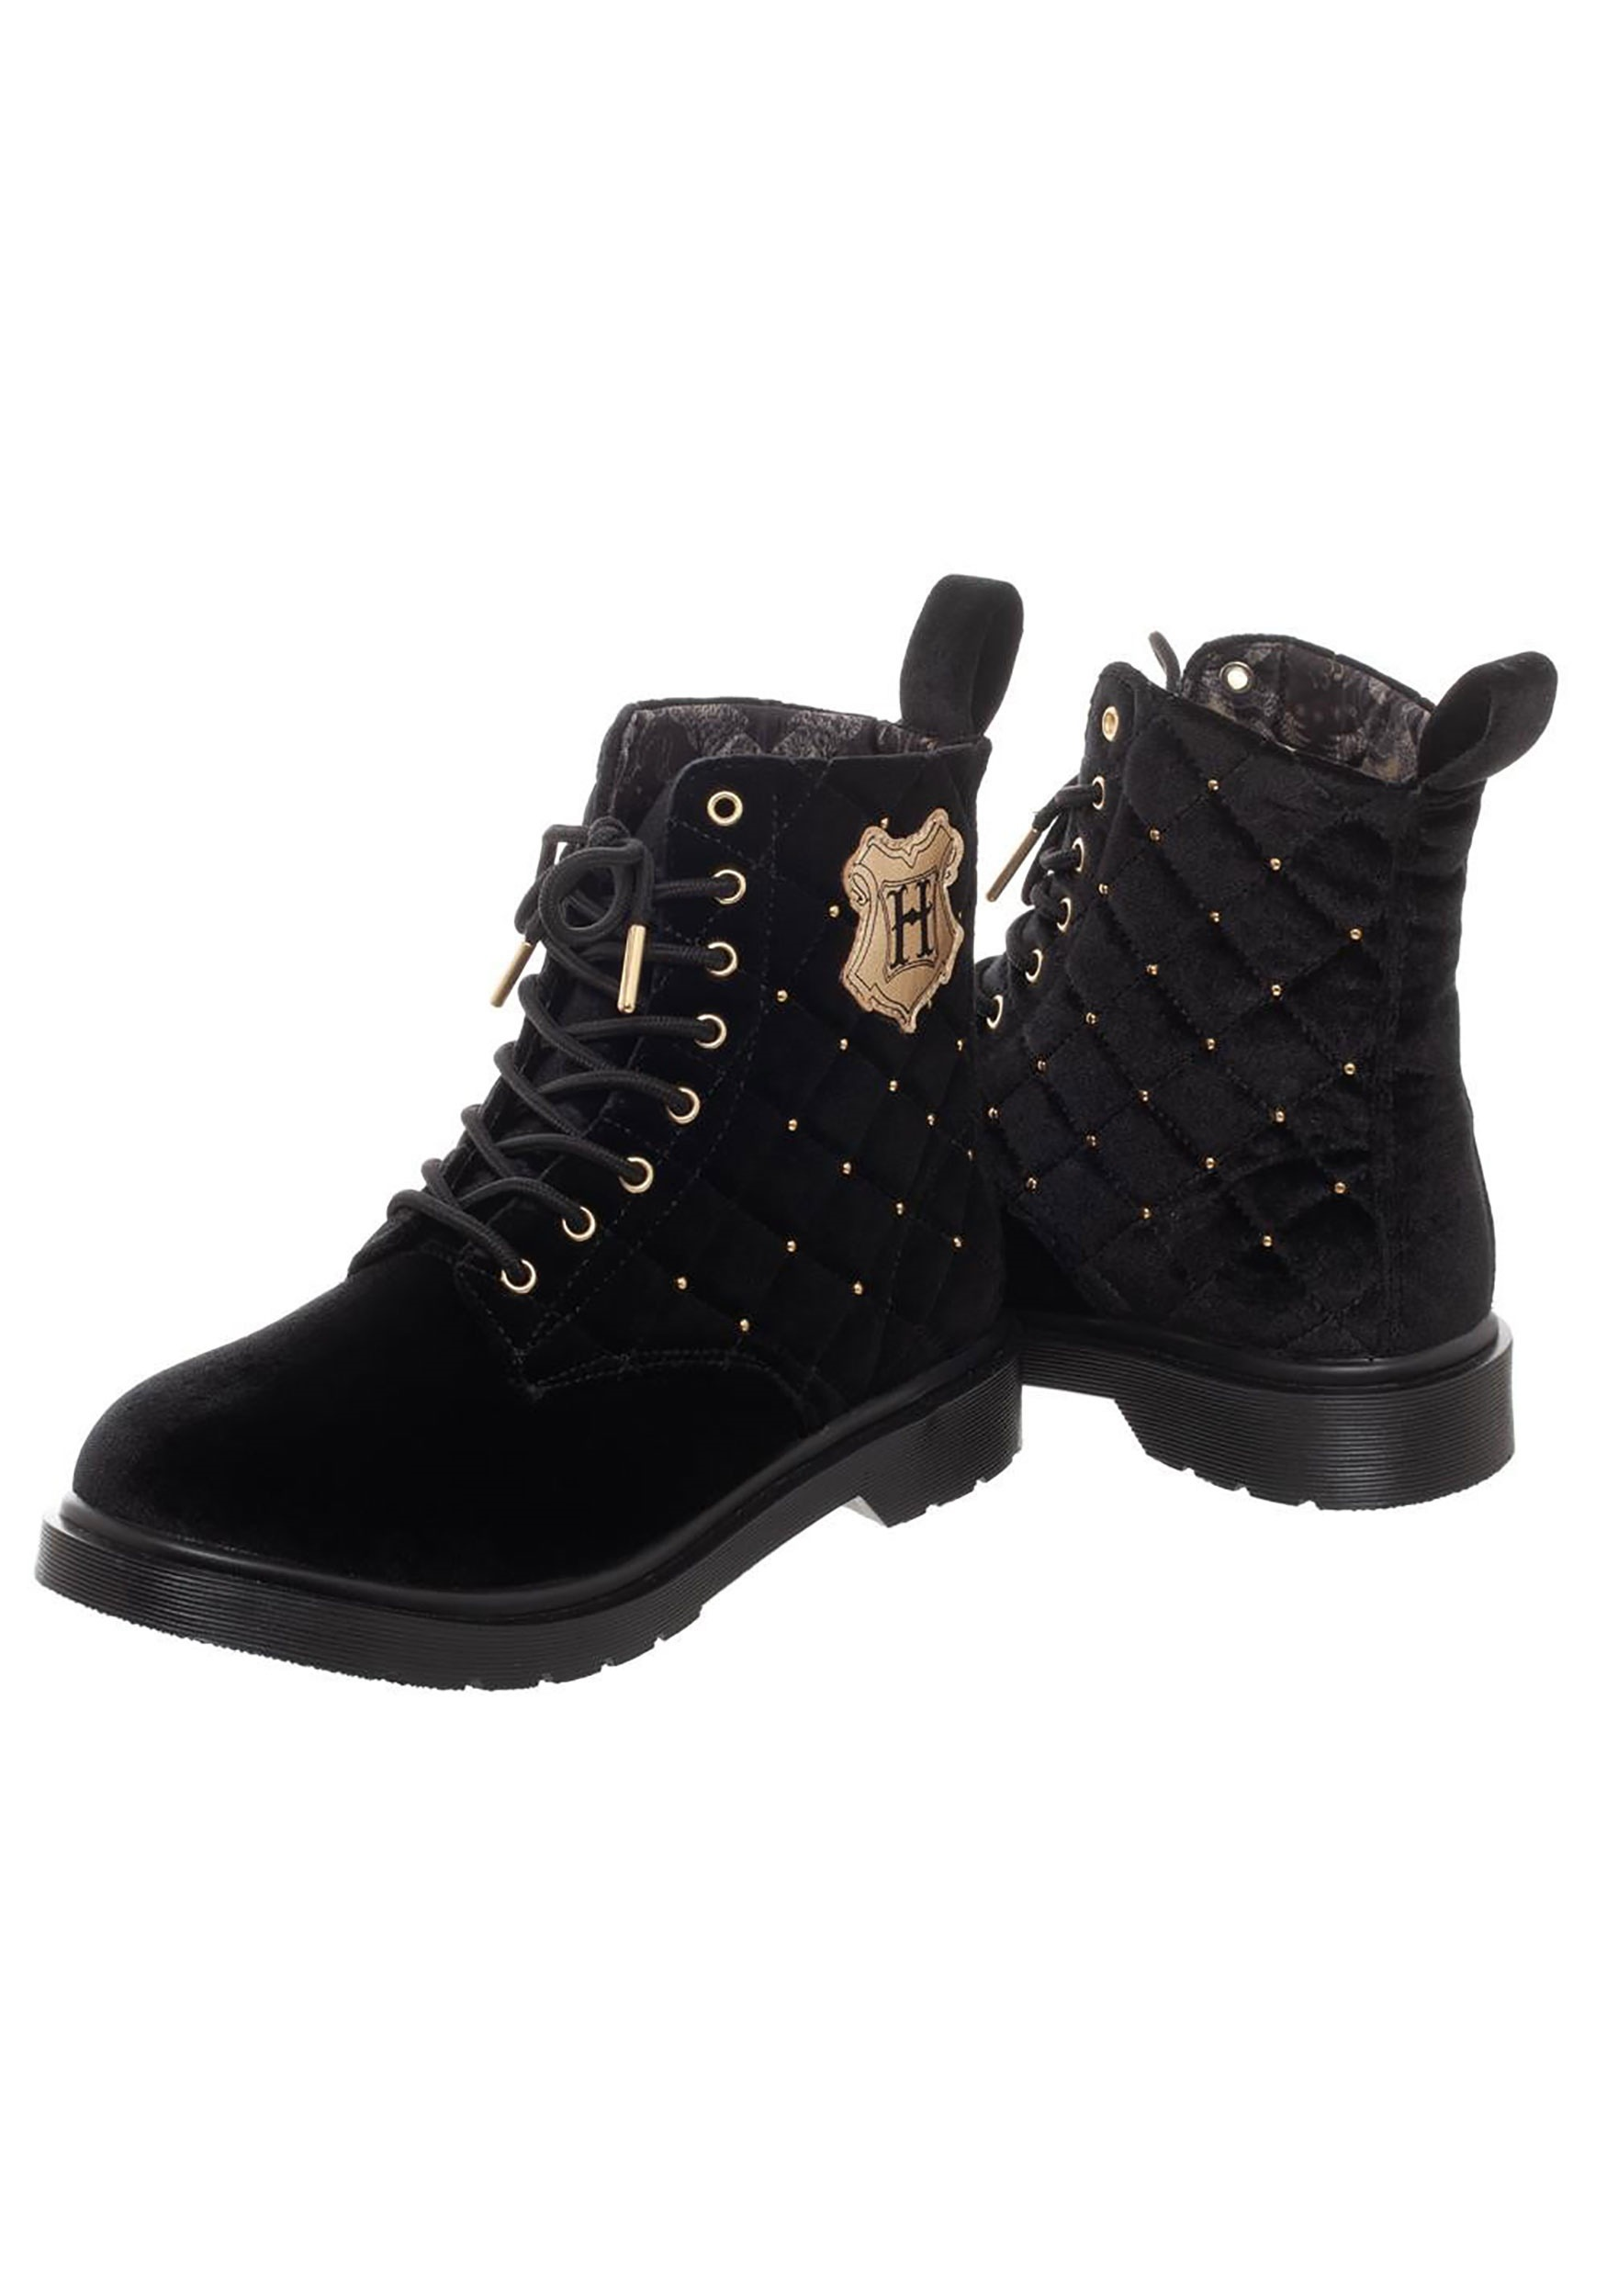 66365ecba5 Harry Potter Quilted Boots for Women